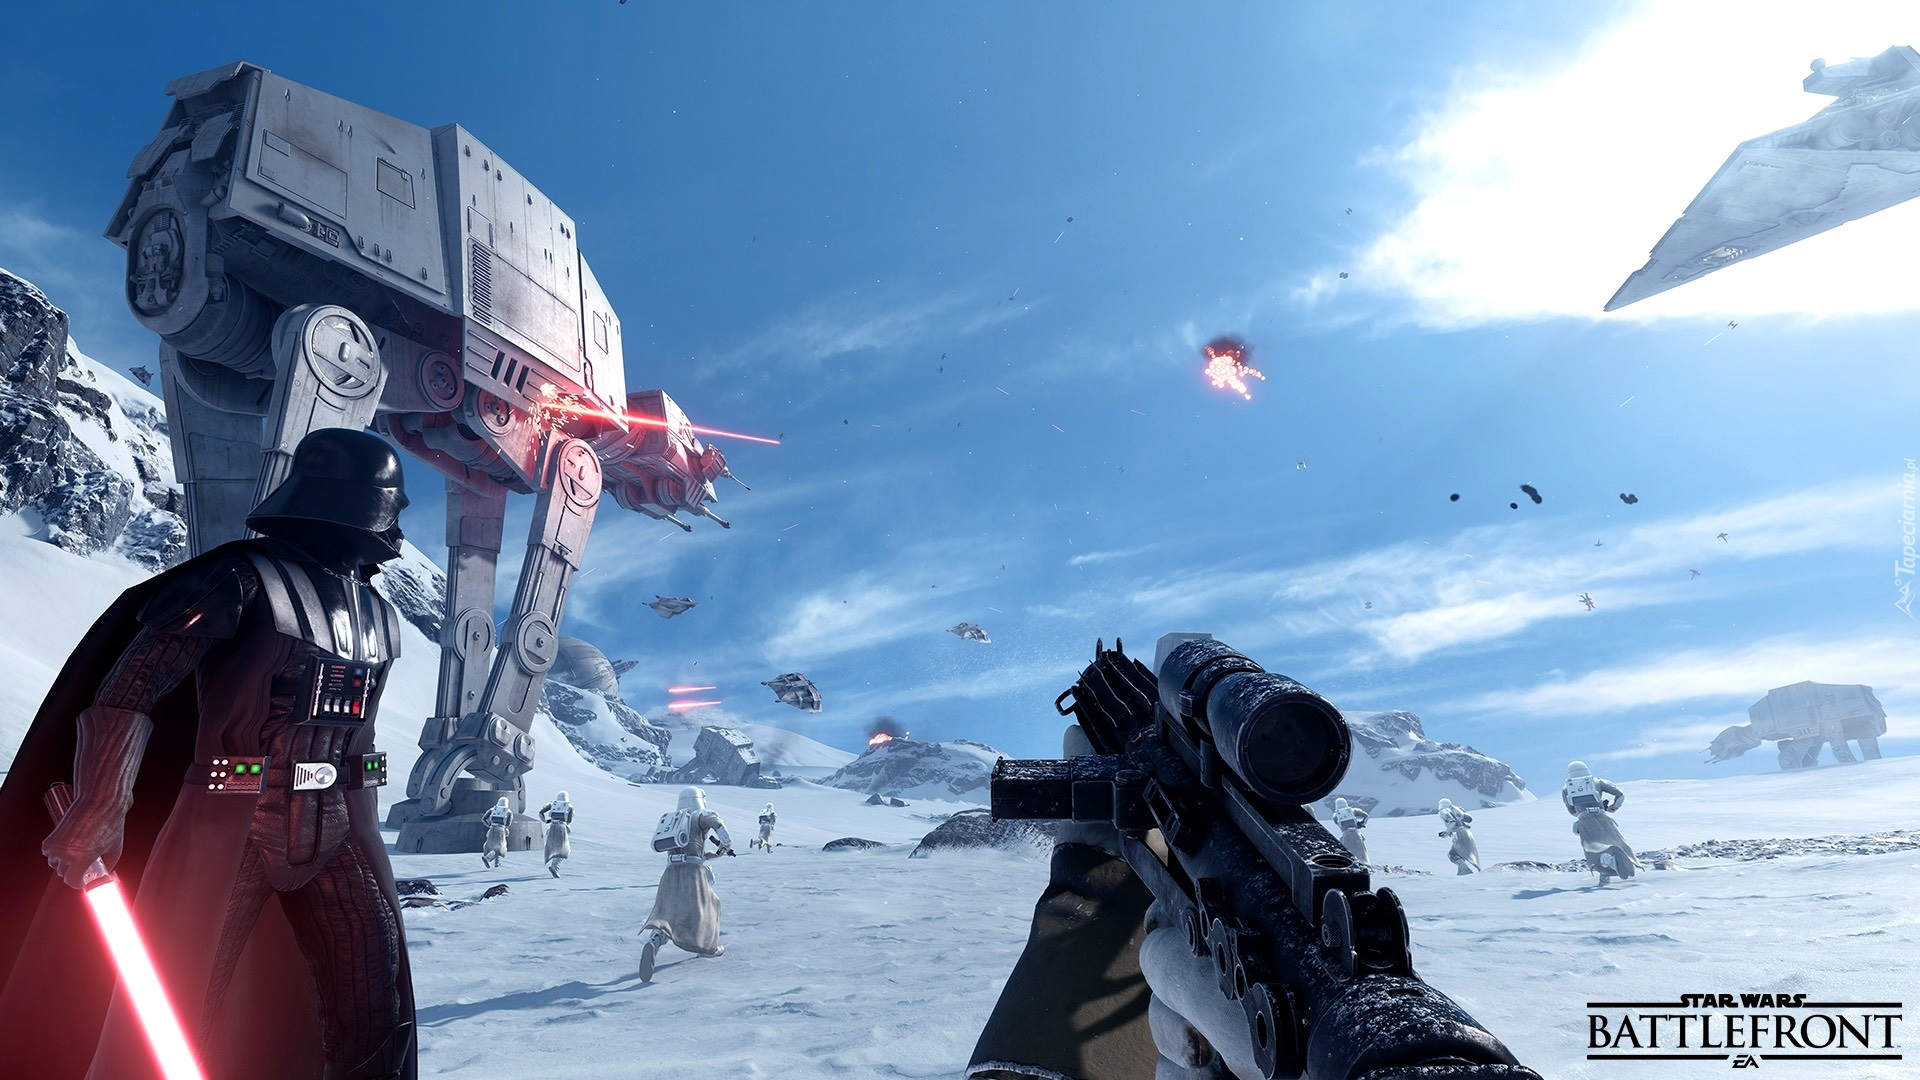 Star Wars: Battlefront, Postacie, Darth Vader, Walka